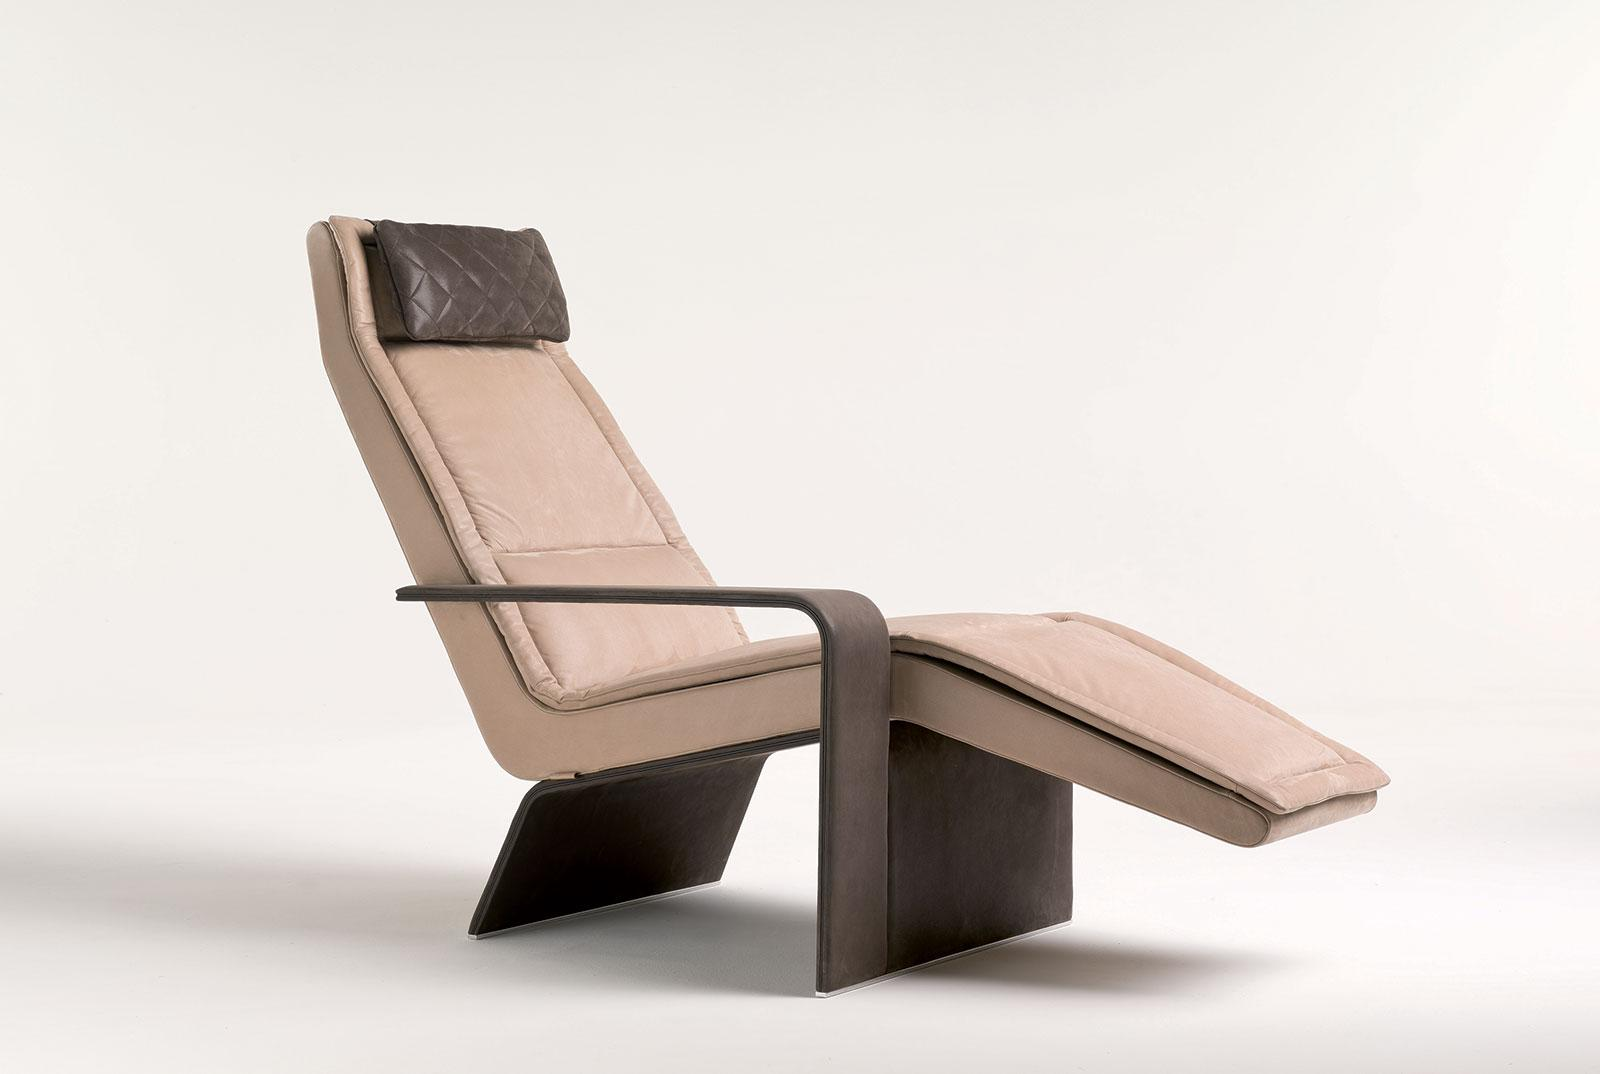 Ala upholstered chaise longue chair shop online italy for Chaise longue classic design italia